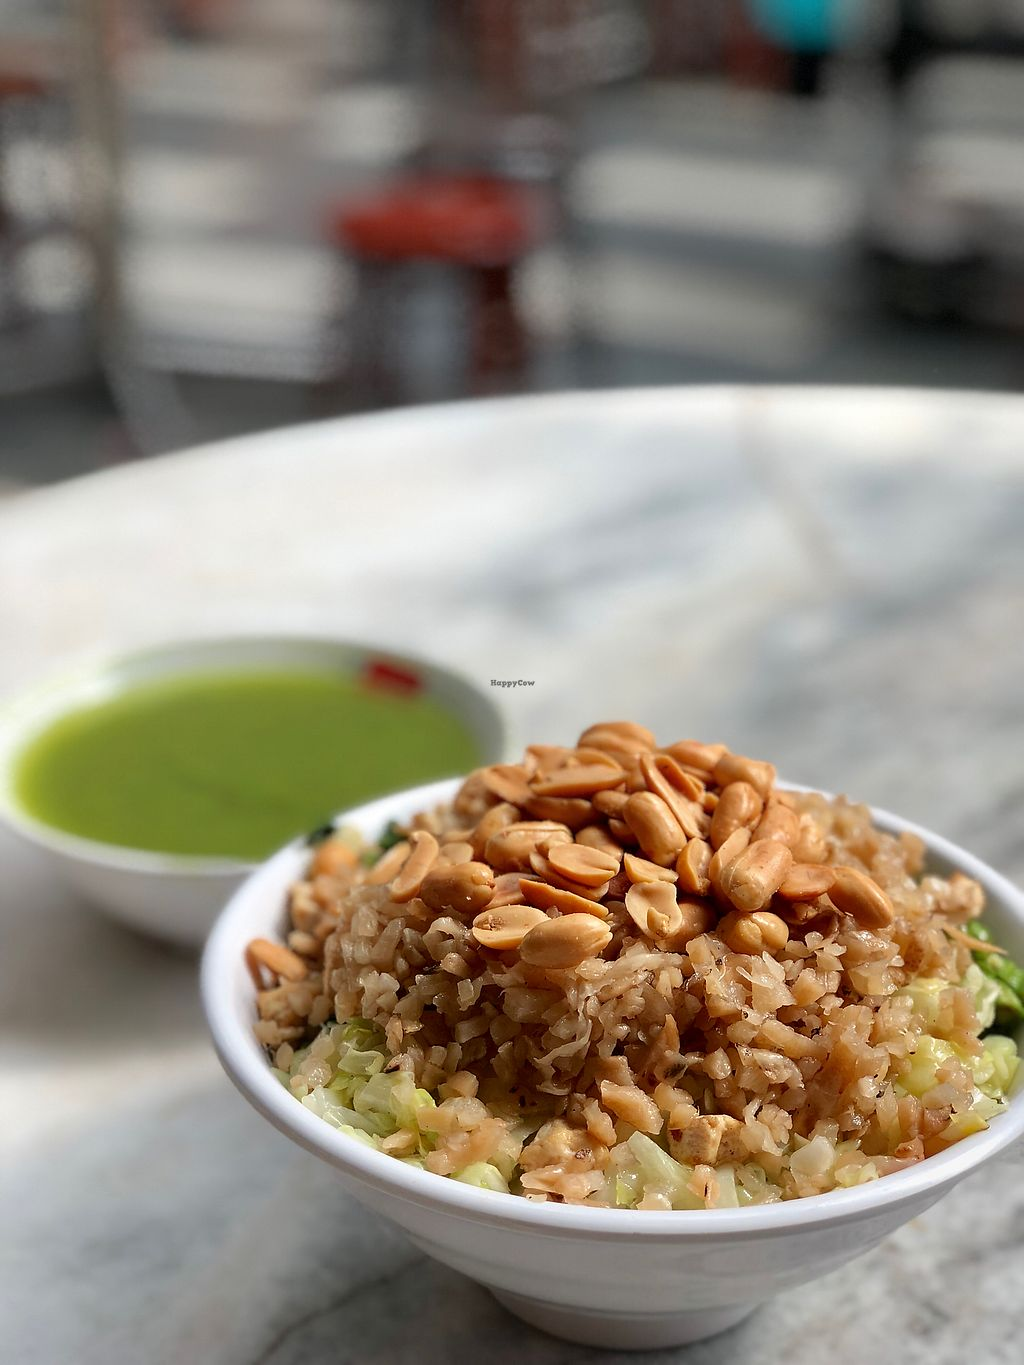 """Photo of Fortune Tree Vegetarian  by <a href=""""/members/profile/CherylQuincy"""">CherylQuincy</a> <br/>Upsized Leicha (thunder tea rice) <br/> February 6, 2018  - <a href='/contact/abuse/image/80849/355516'>Report</a>"""